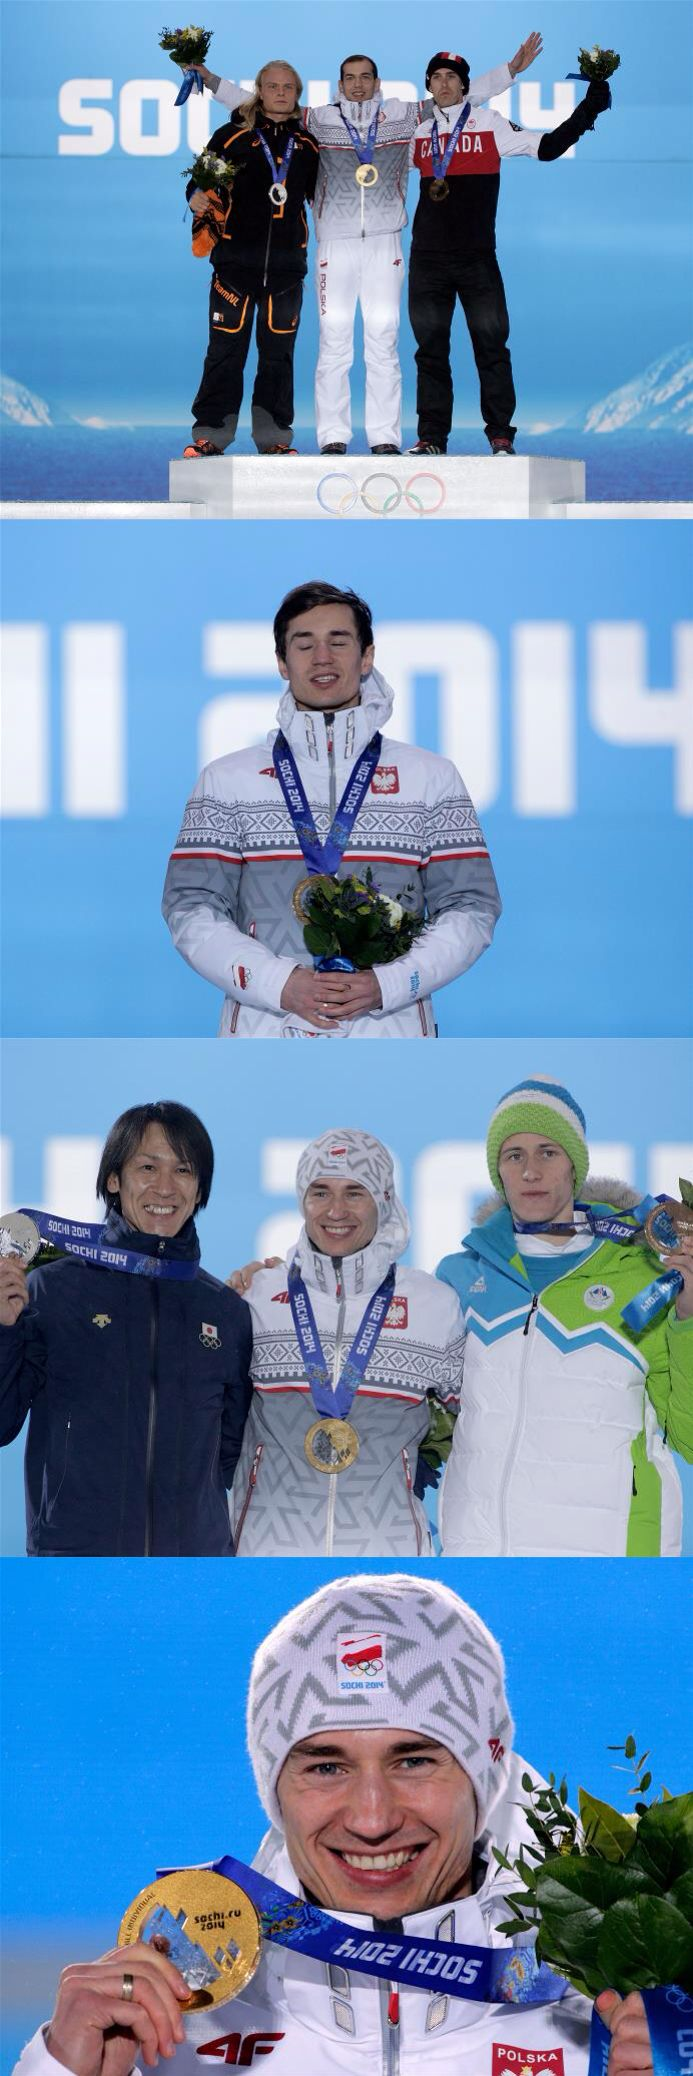 Sochi 2014 Day 10 / Medal Ceremony (L-R) Silver medalist Koen Verweij of Netherlands, gold medalist Zbigniew Brodka of Poland and bronze medalist Denny Morrison of Canada celebrate on the podium during the medal ceremony for the Men's 1500 m Speed Skating, (L-R) Silver medalist Noriaki Kasai of Japan, gold medalist Kamil Stoch of Poland and bronze medalist Peter Prevc of Slovenia celebrate on the podium during the medal ceremony